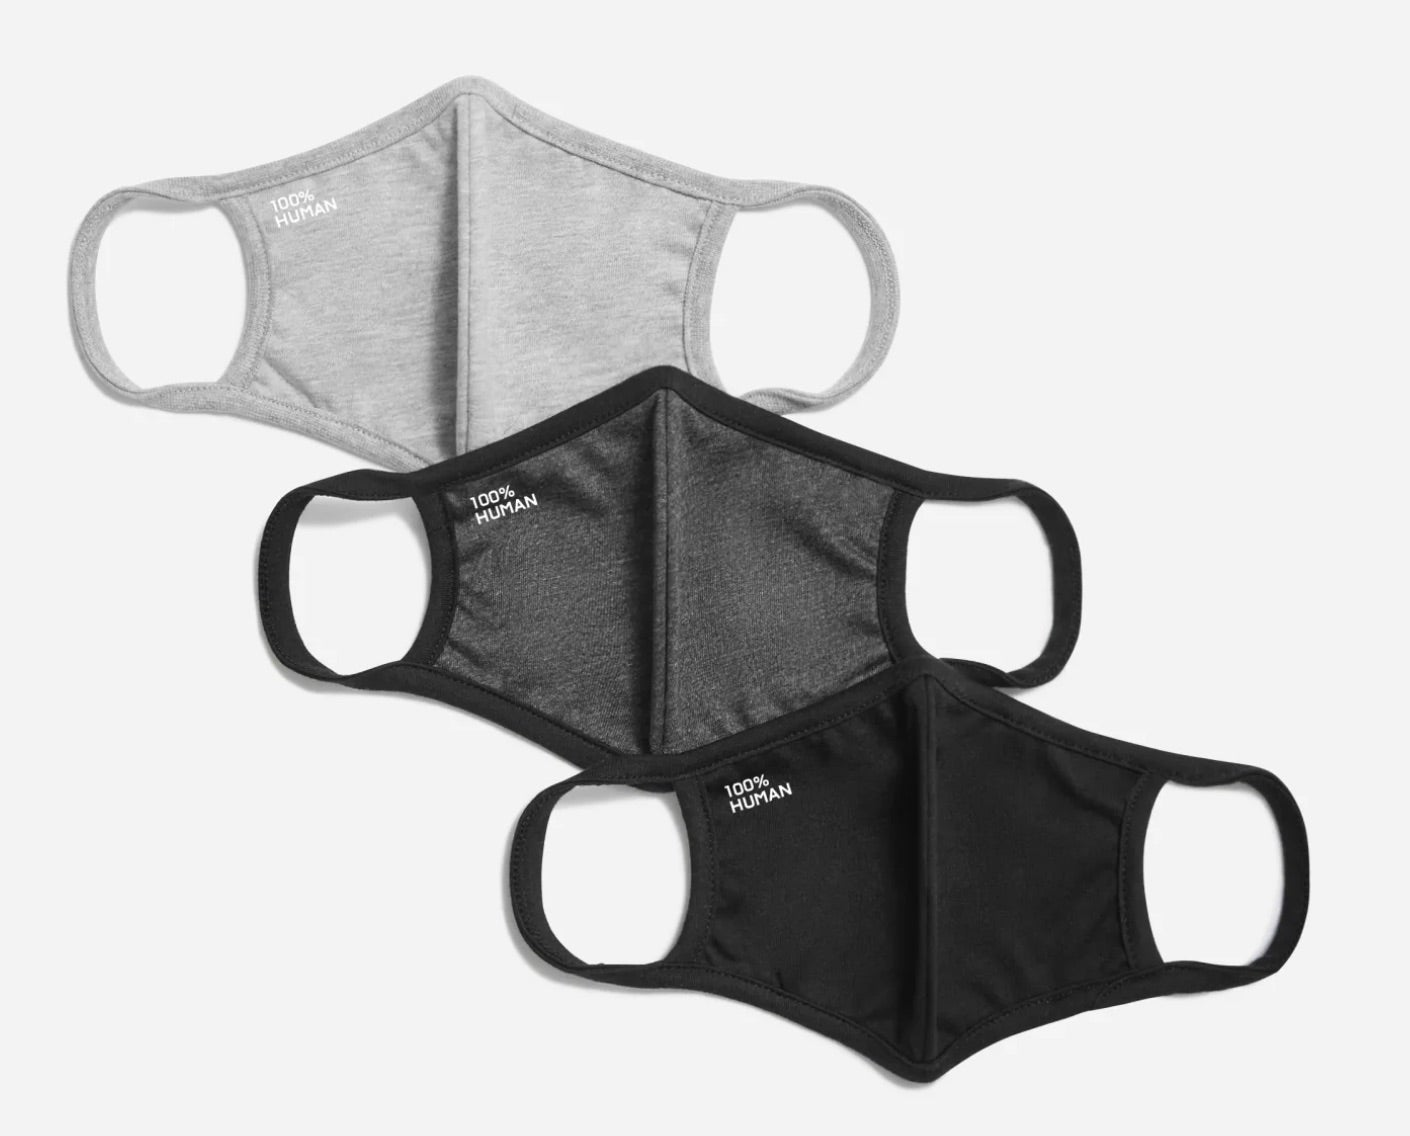 The 100% Human Face Mask Three-Pack